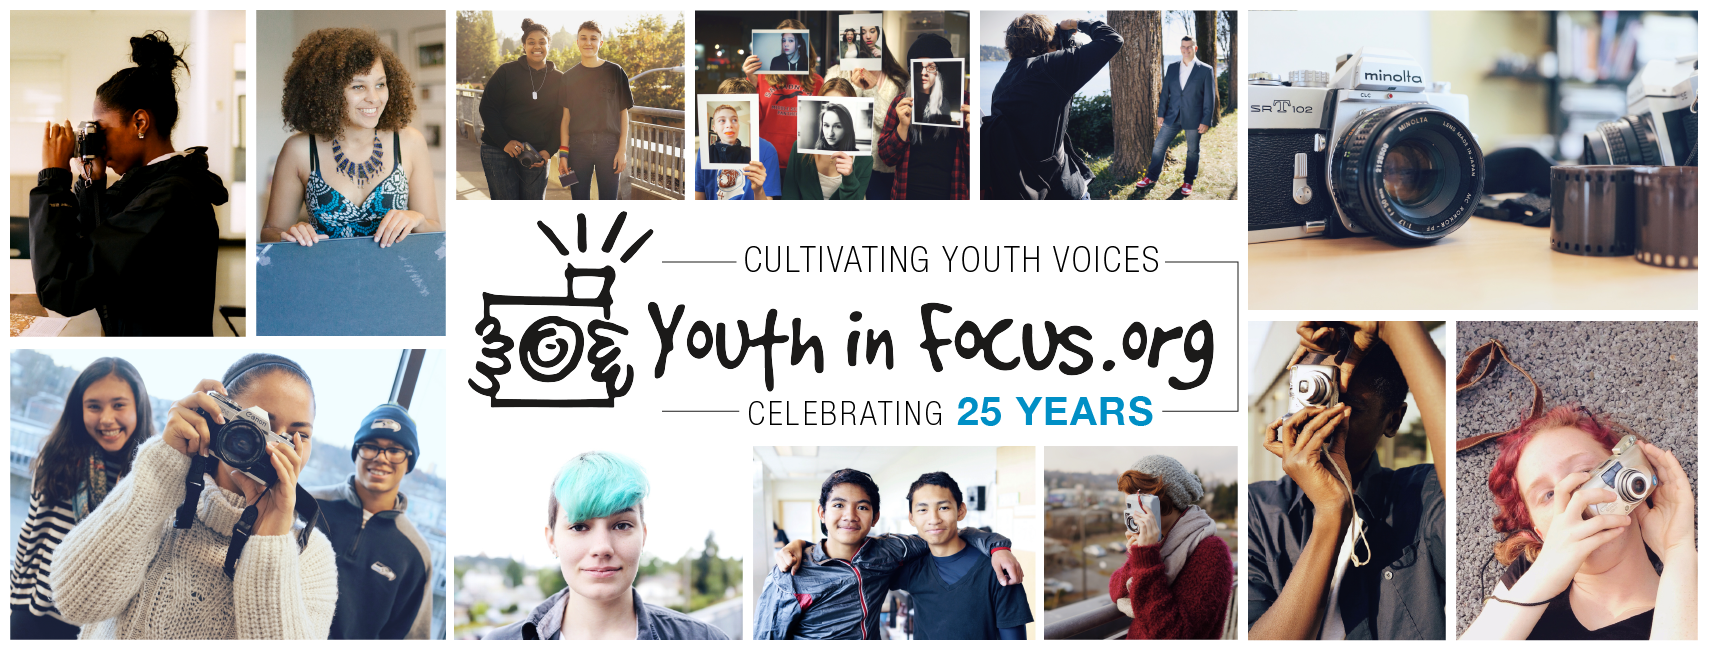 Youth in Focus - Facebook cover.png